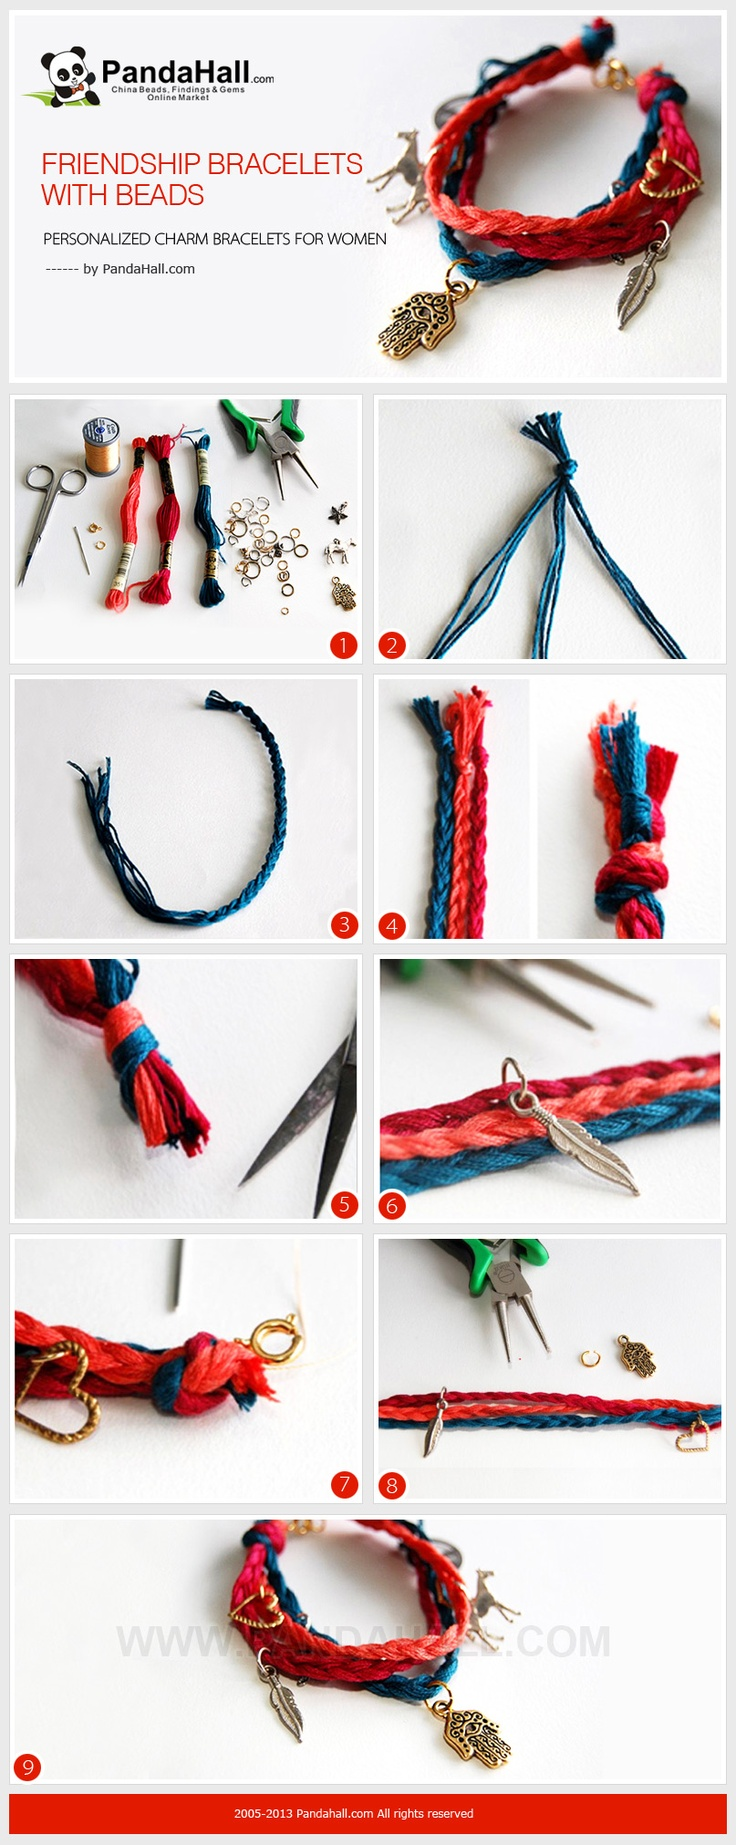 Today We Demonstrate You A Handson Way To Make Friendship Bracelets With  Beads;